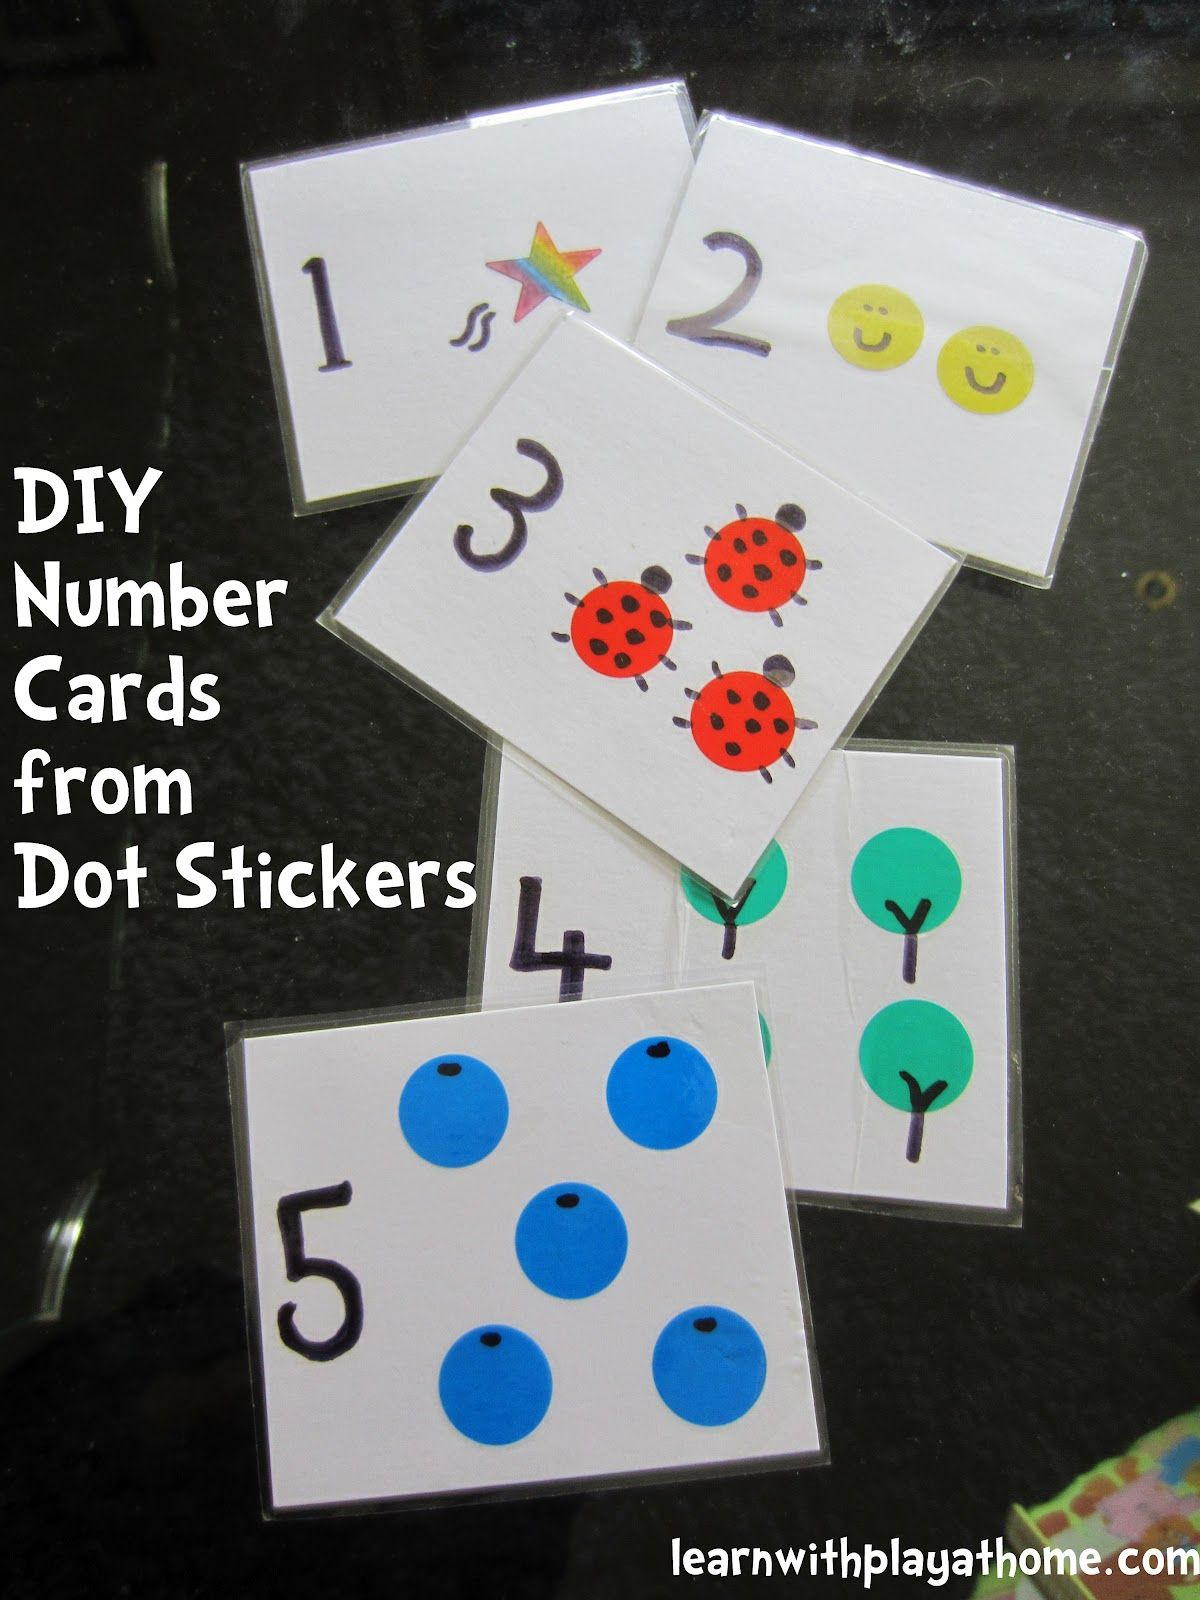 Make your own number cards with your